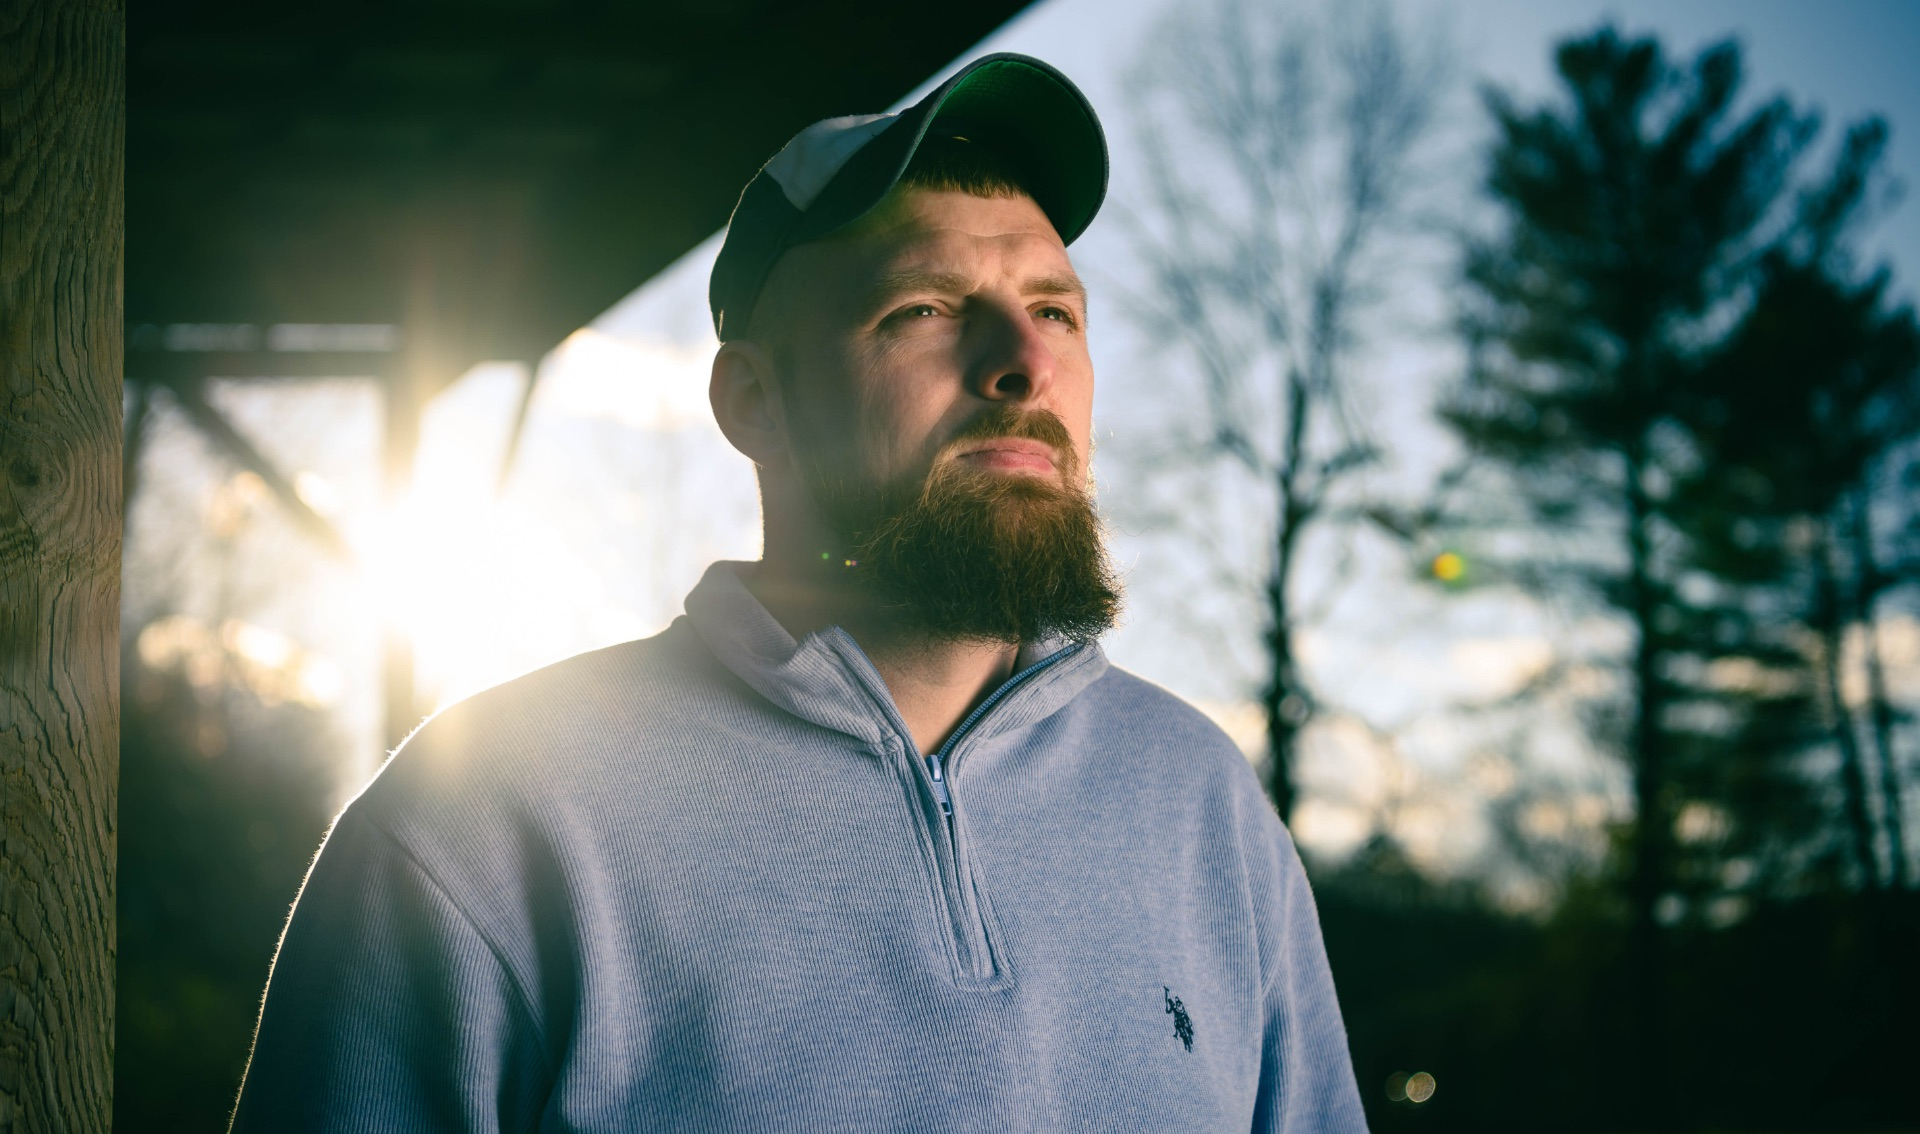 Timothy stands on his porch as the sun sets beneath the trees behind him. He is looking past the camera with a determined expression.